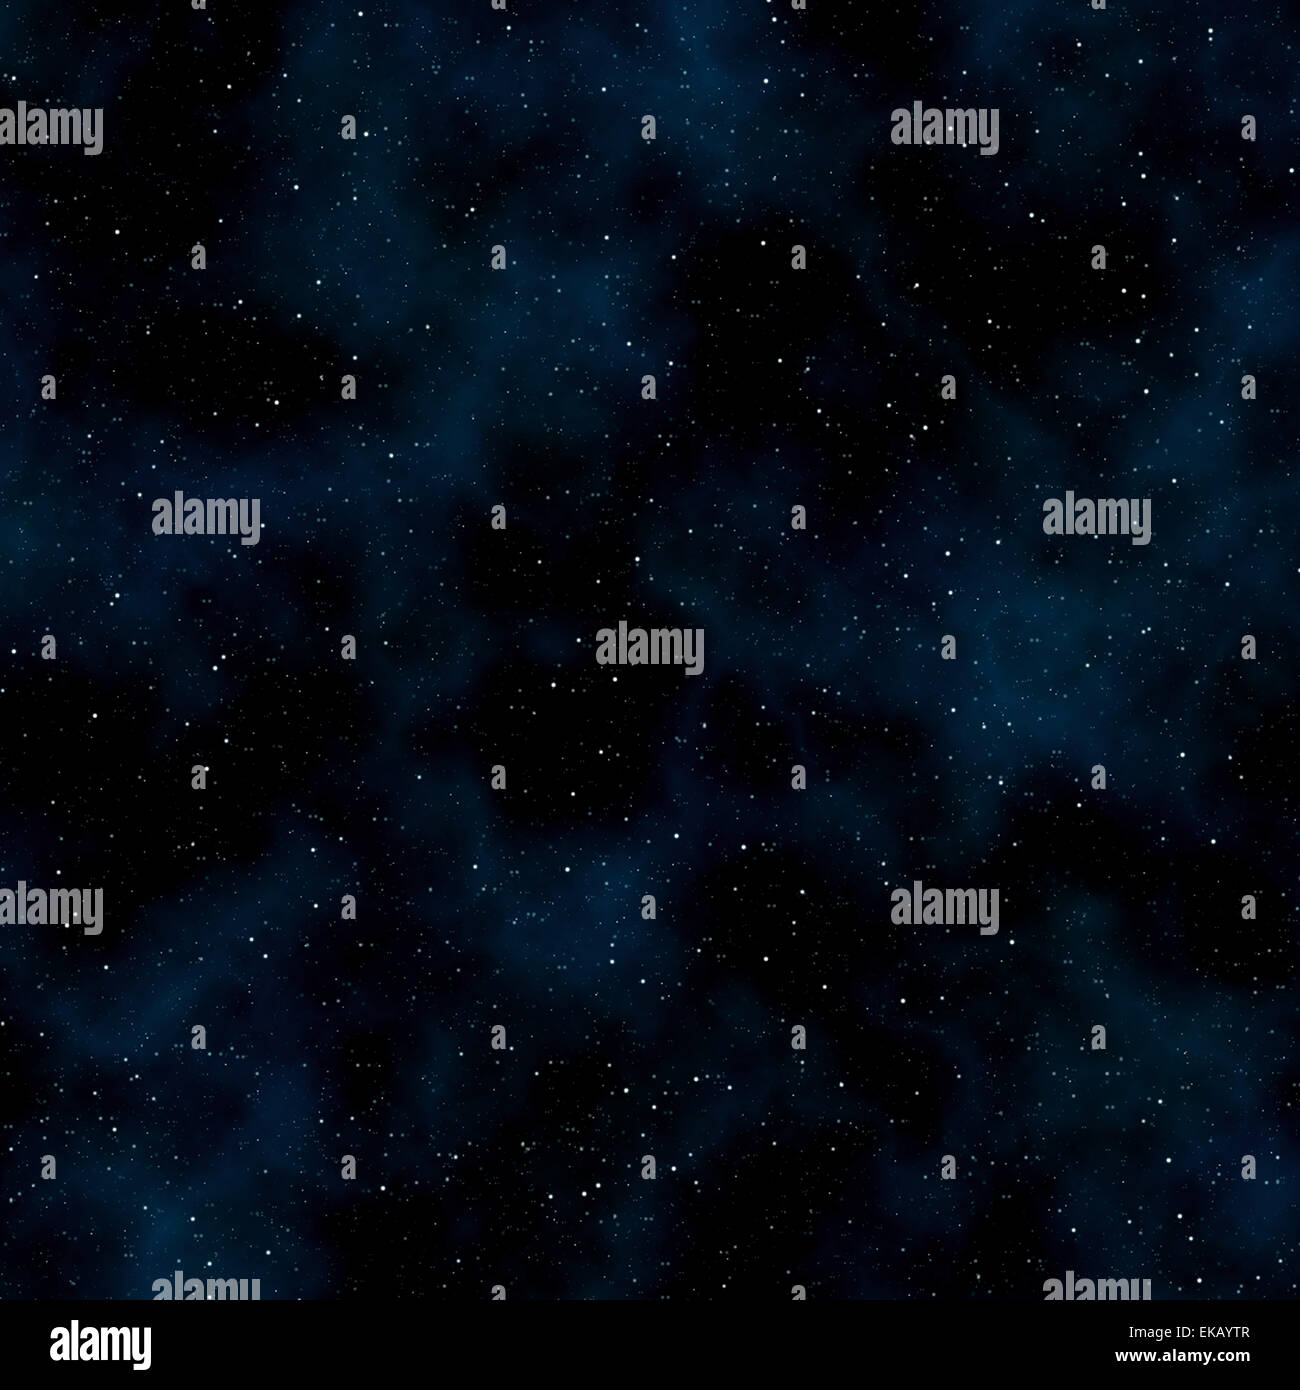 Abstract space background: stars and nebulas - Stock Image